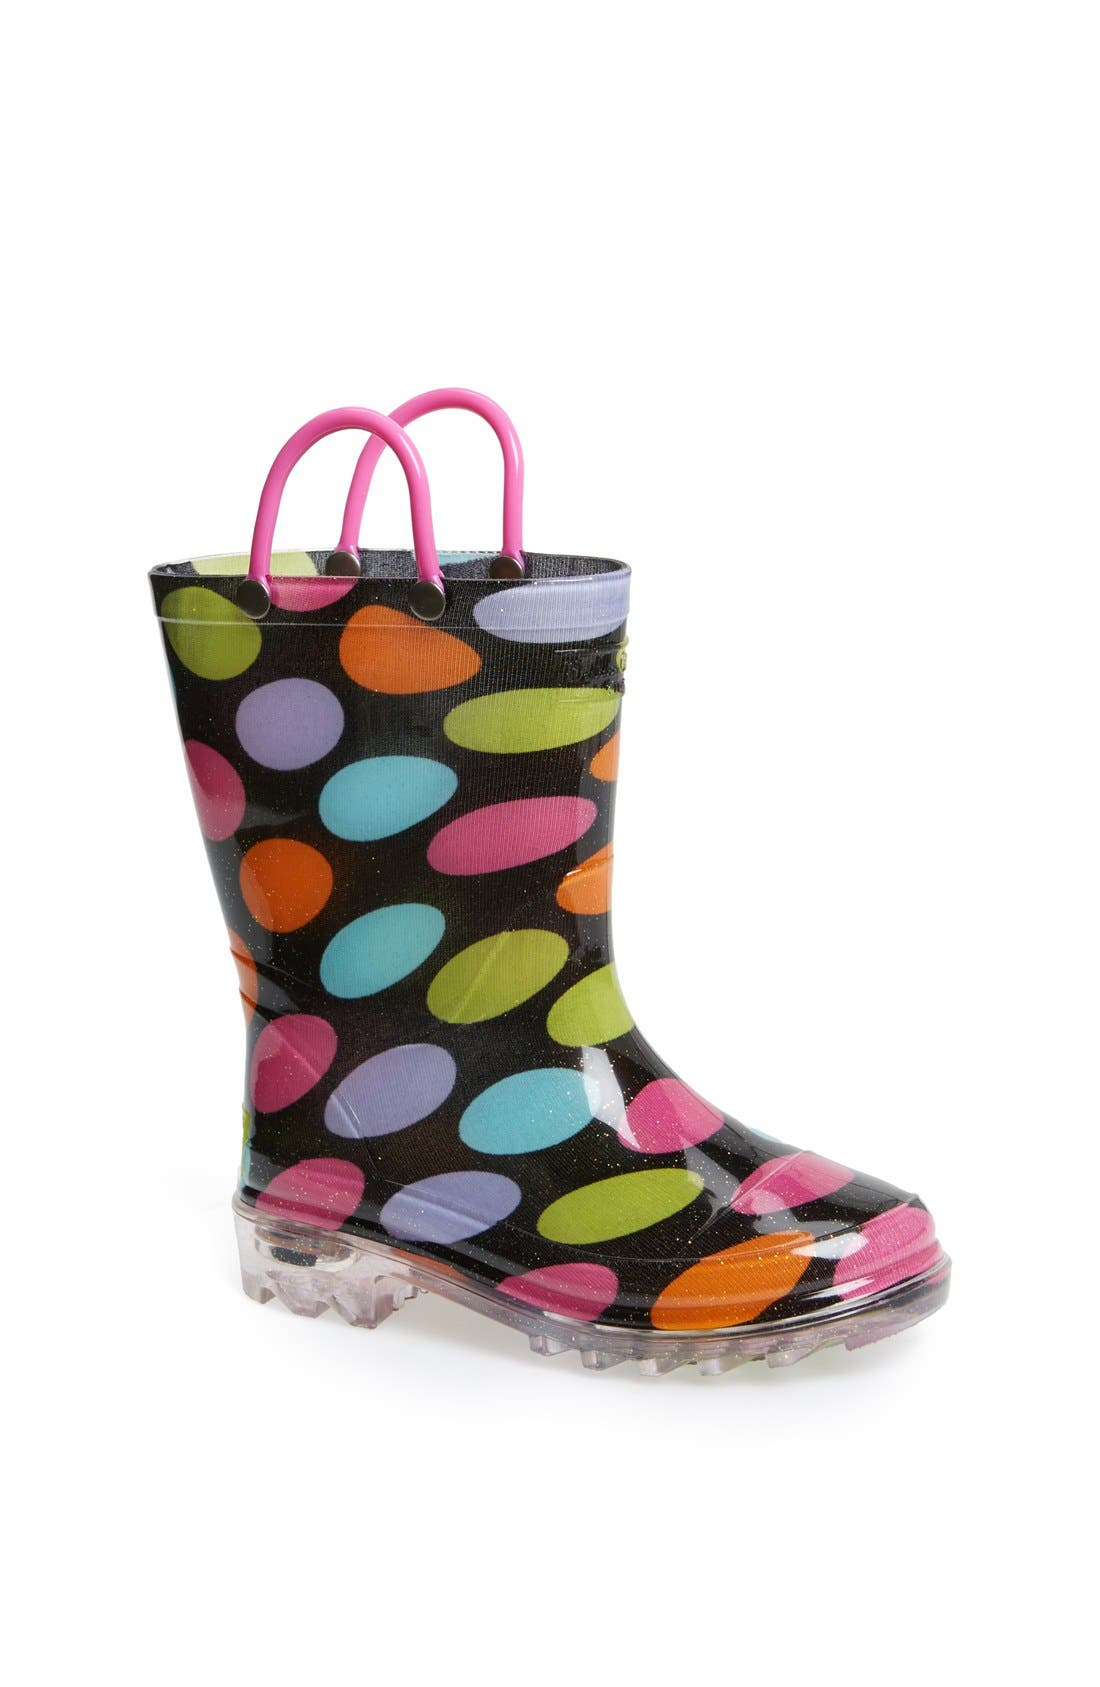 Alternate Image 1 Selected - Western Chief 'Dotty' Light Up Rain Boot (Toddler & Little Kid)